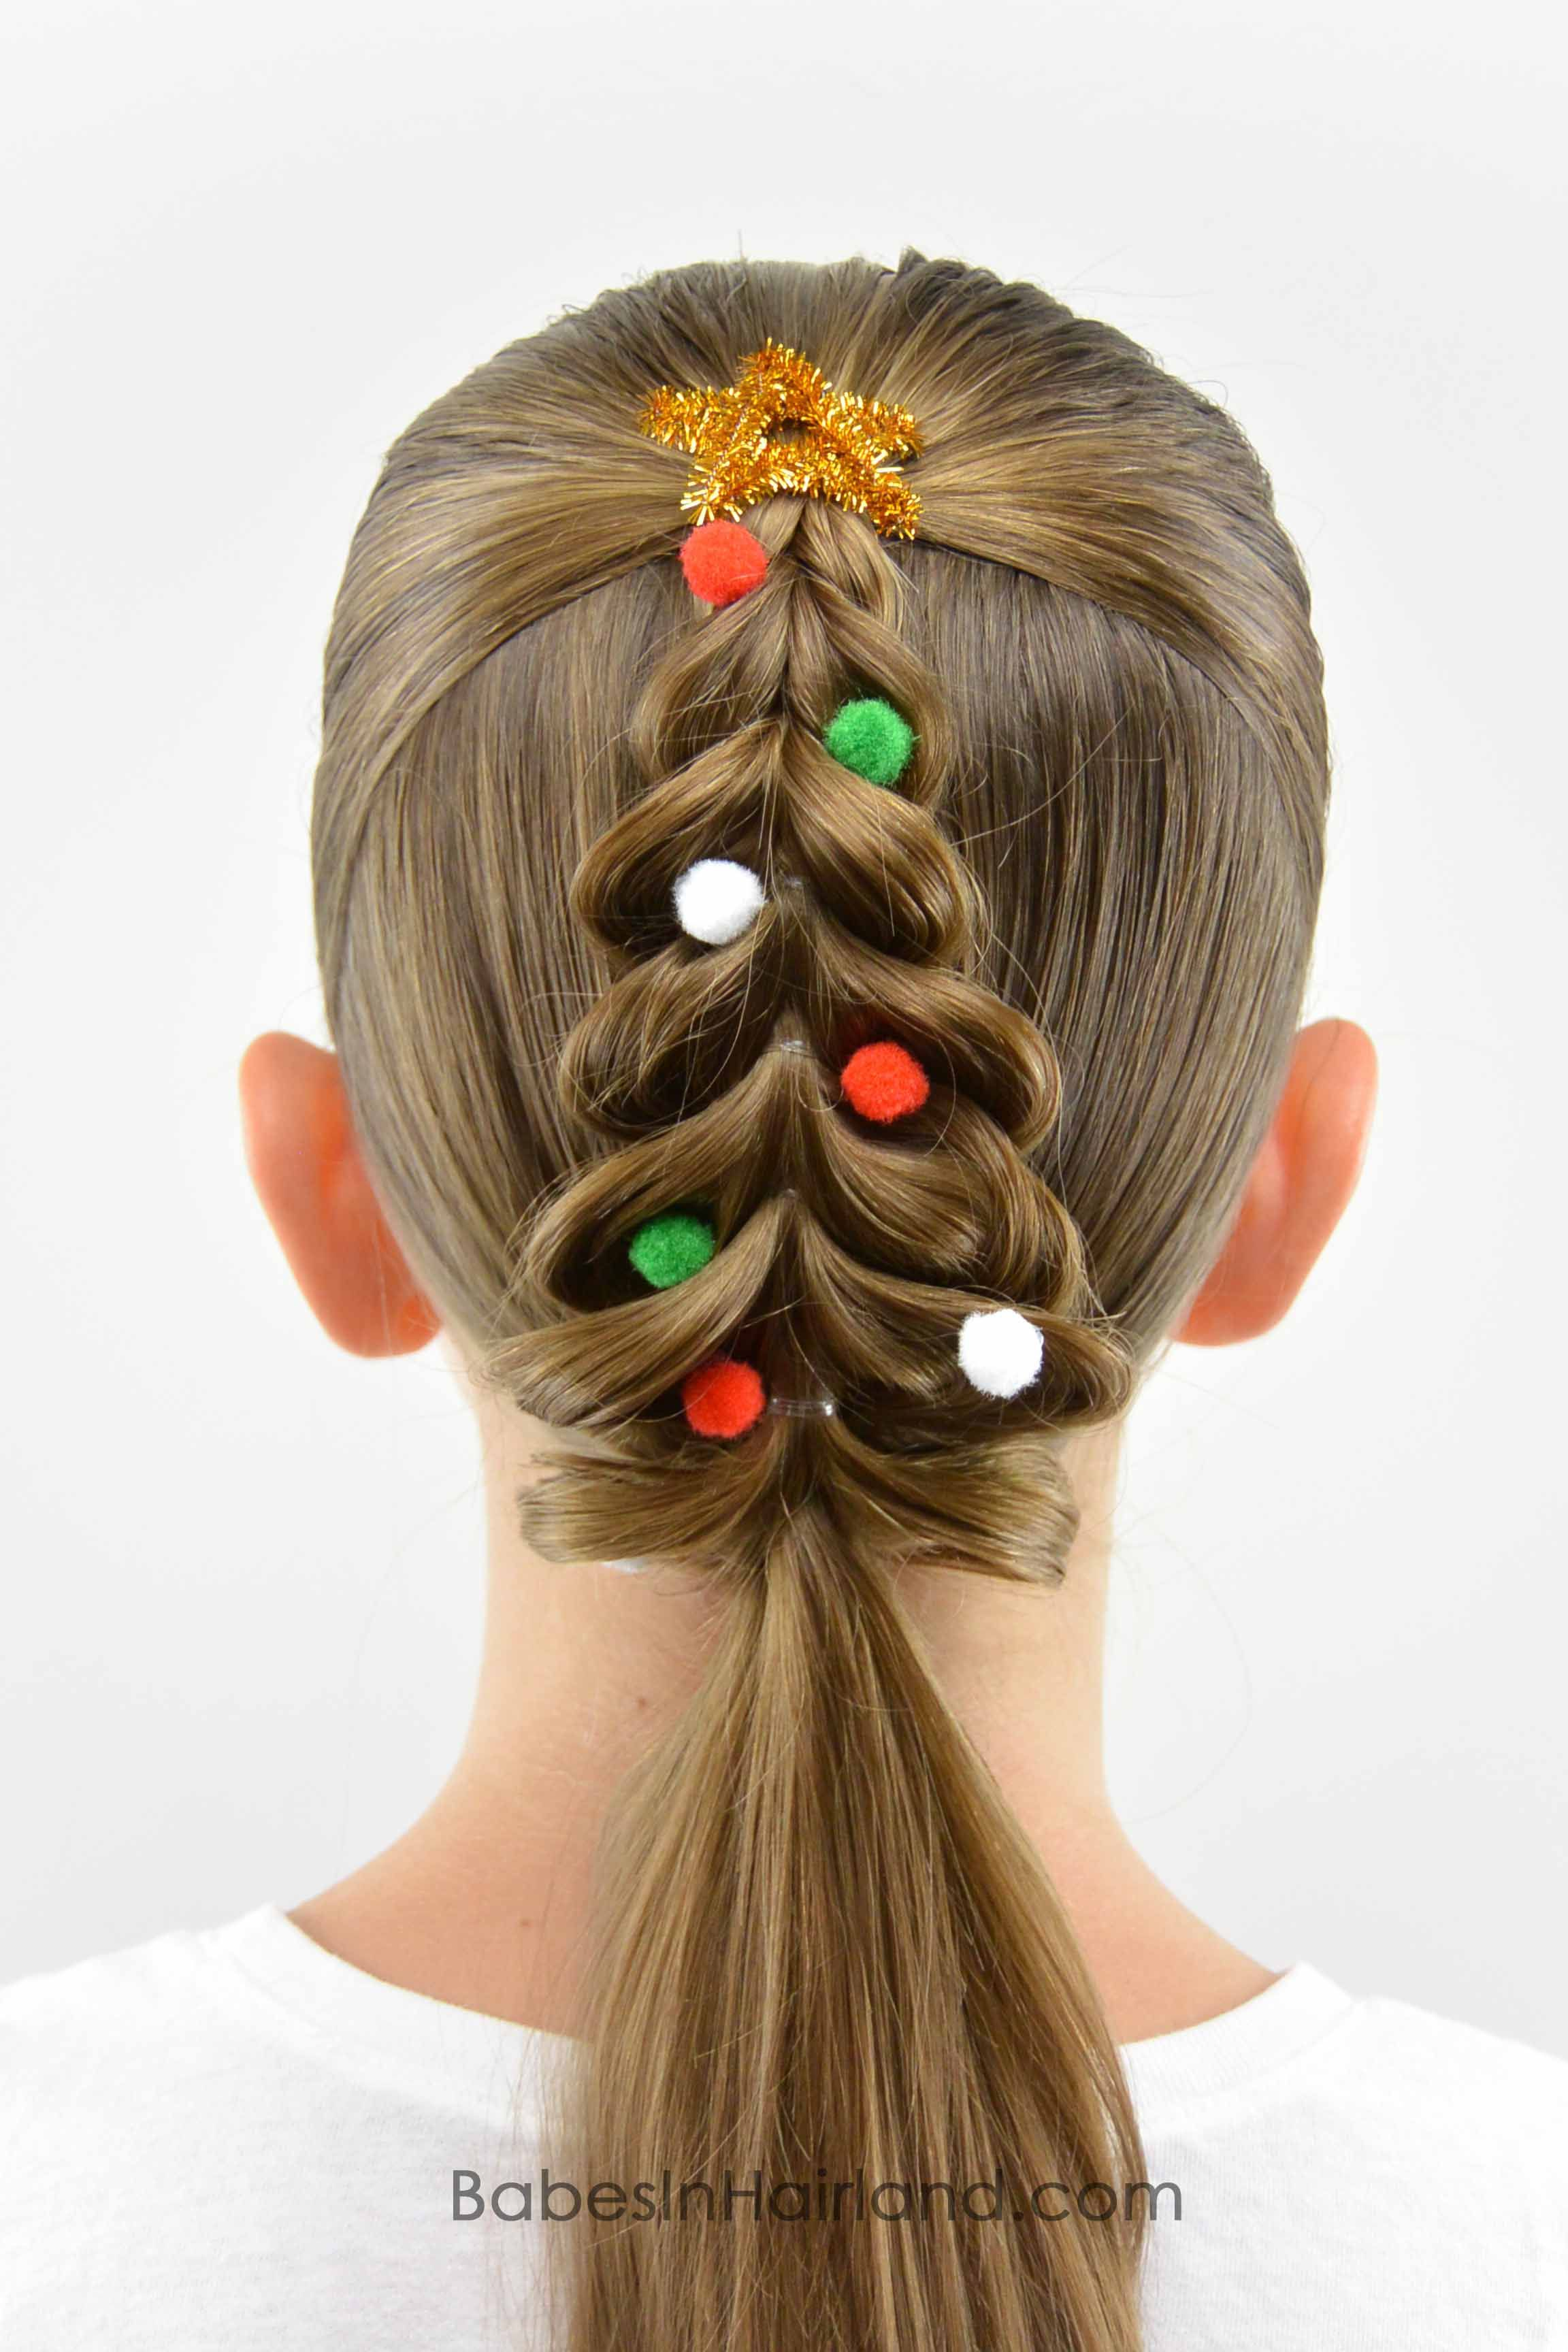 Christmas Hairstyles For Girls.Christmas Tree Pull Through Braid Babes In Hairland So On